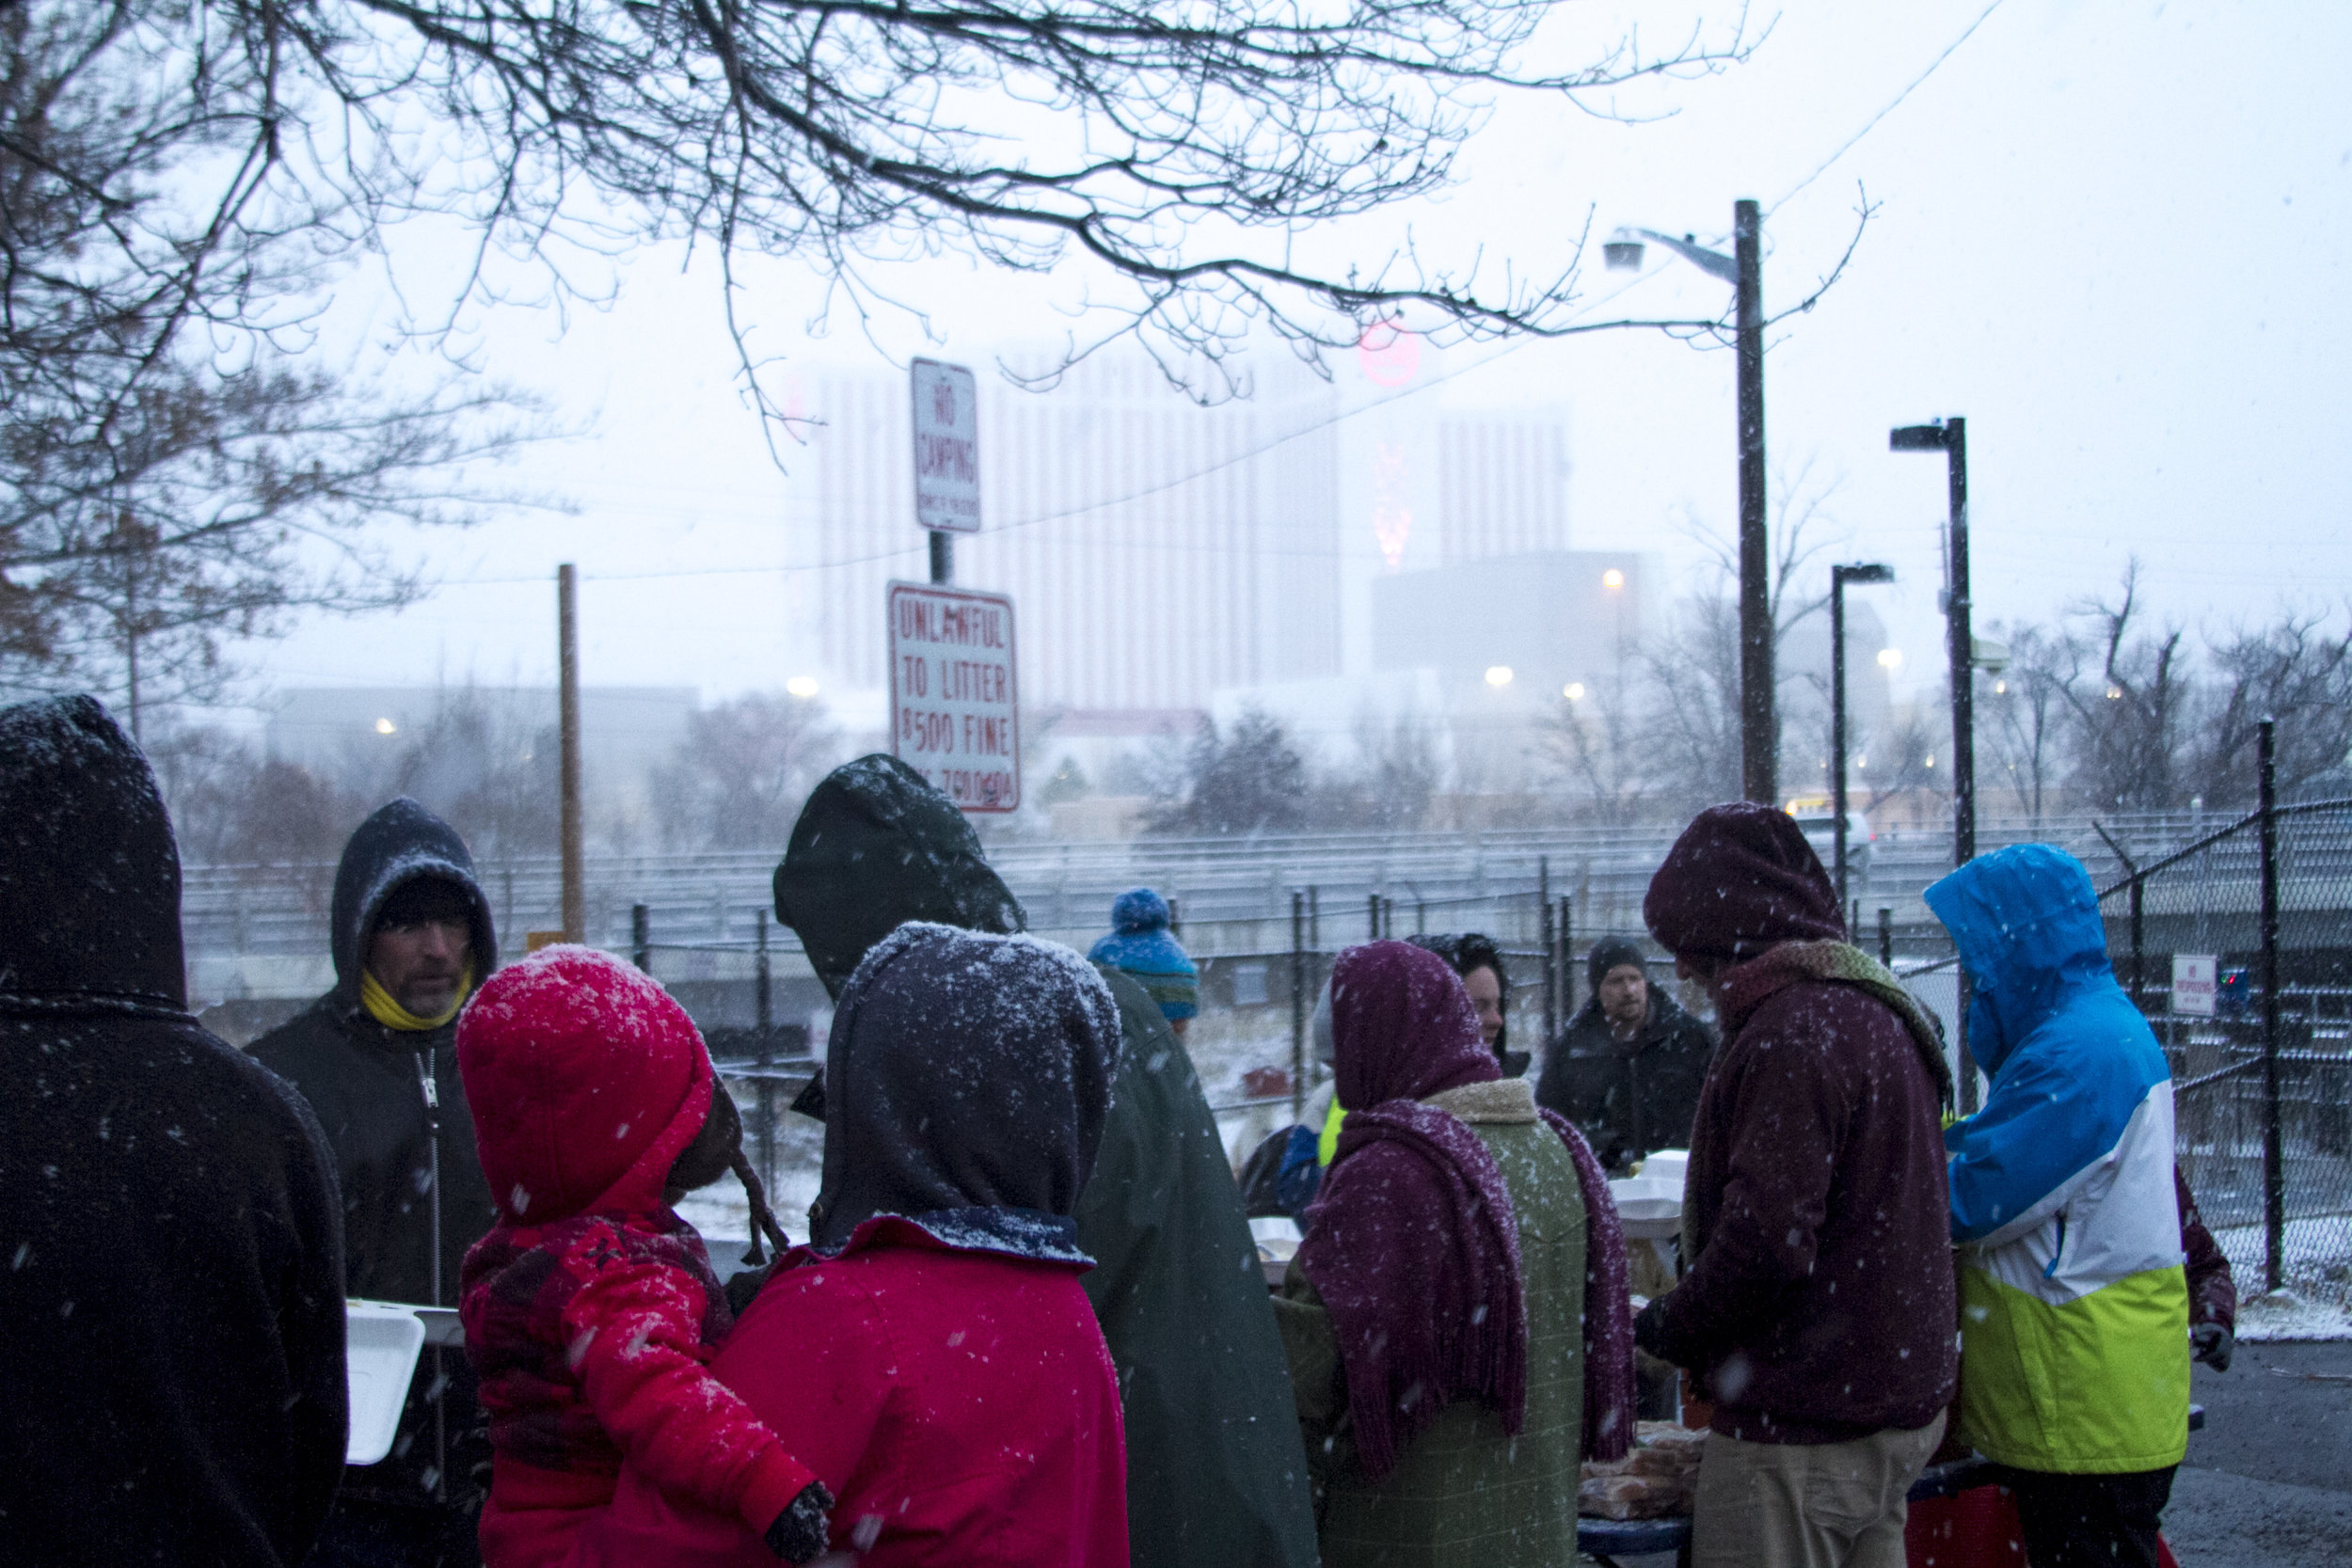 For those interested in participating,  Food Not Bombs Reno can be found on Facebook . They say those who wish to help can just come at 5:30 on Monday evenings with whatever they can bring, from food to utensils, garbage bags and plastic plates, as well as donations for the houseless.https://www.facebook.com/renofoodnotbombs/